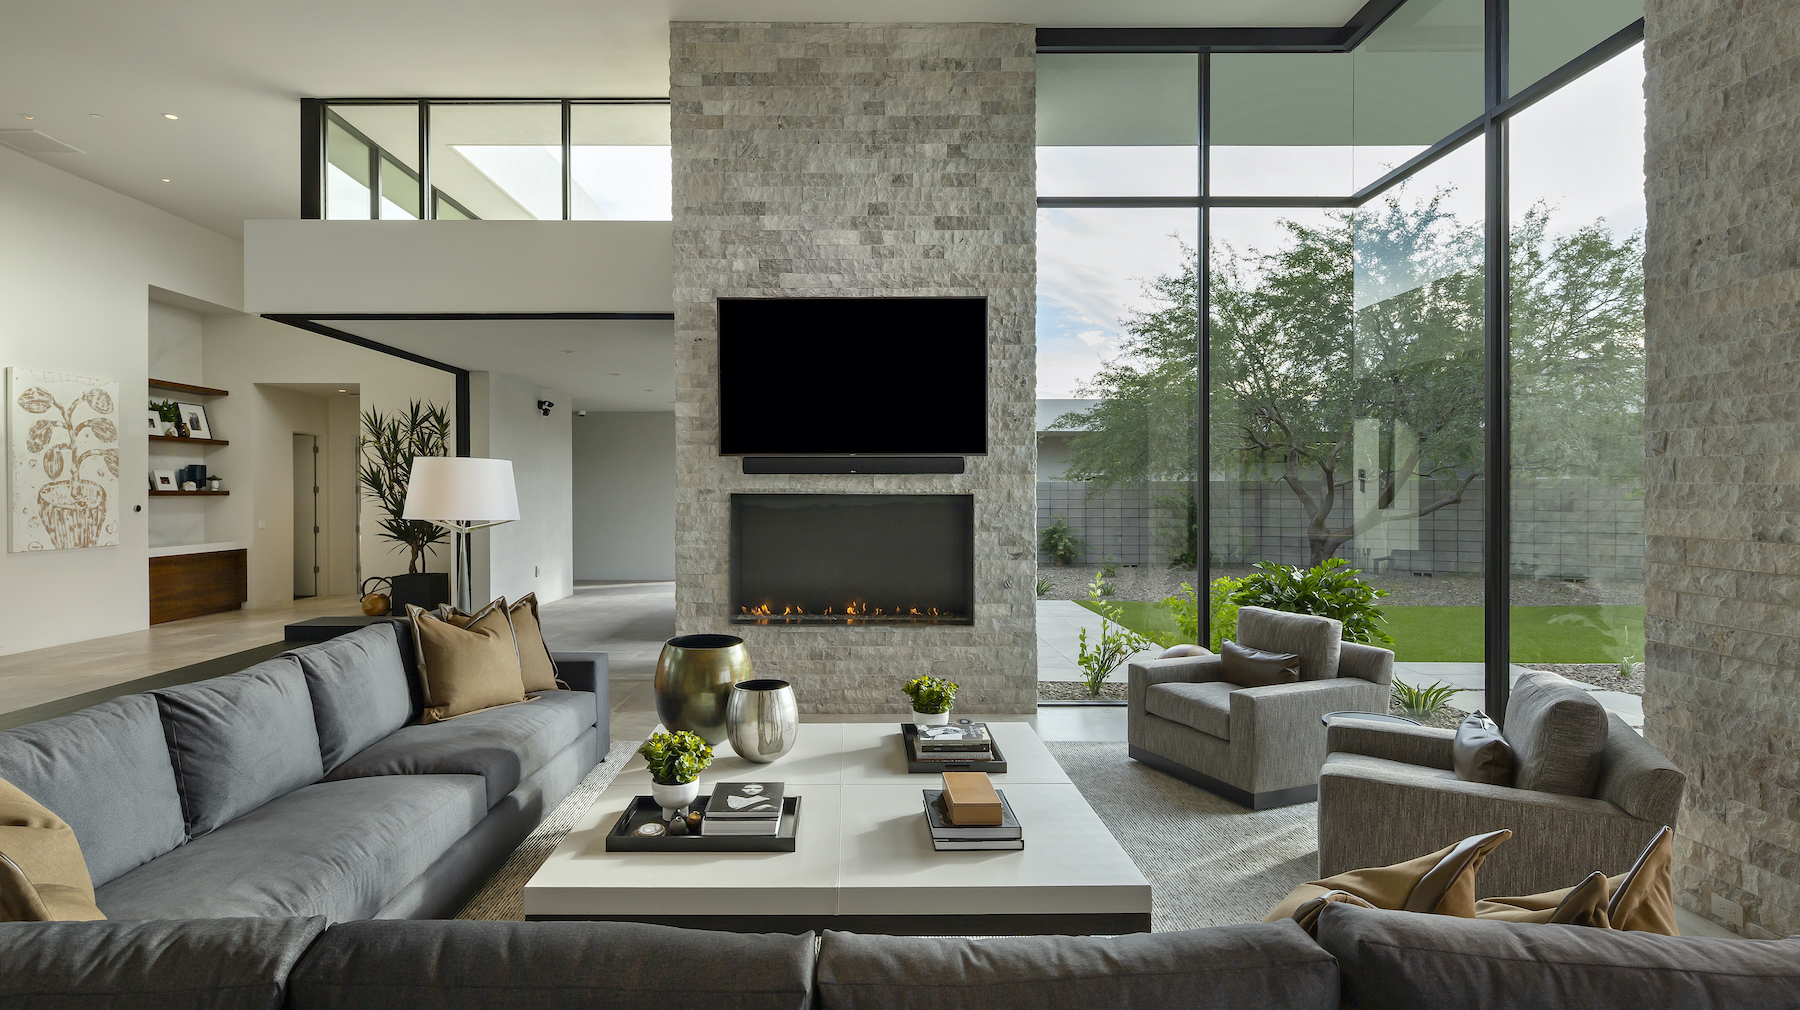 Kachina Estates architecture by Drewett Works